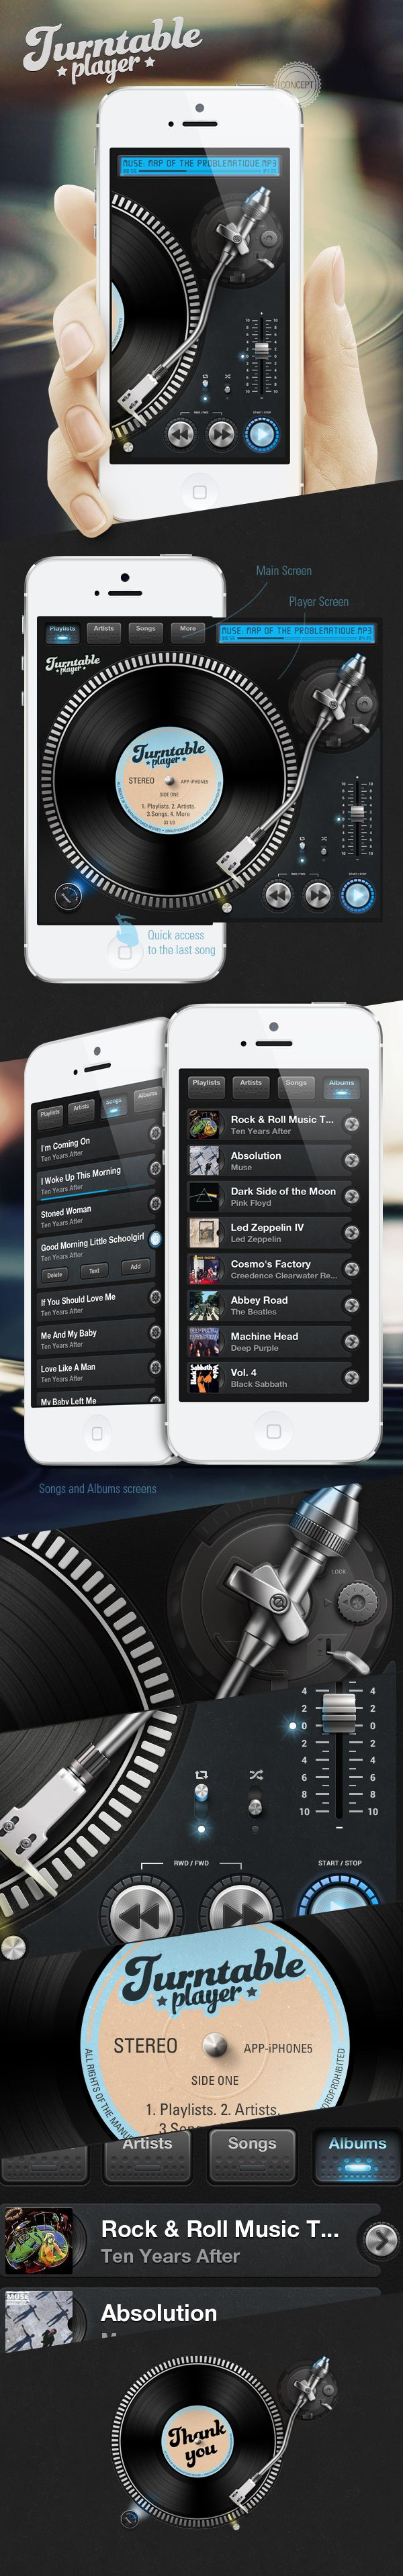 Turntable Player iPhone App Concept by Ivan Gapeev, via Behance